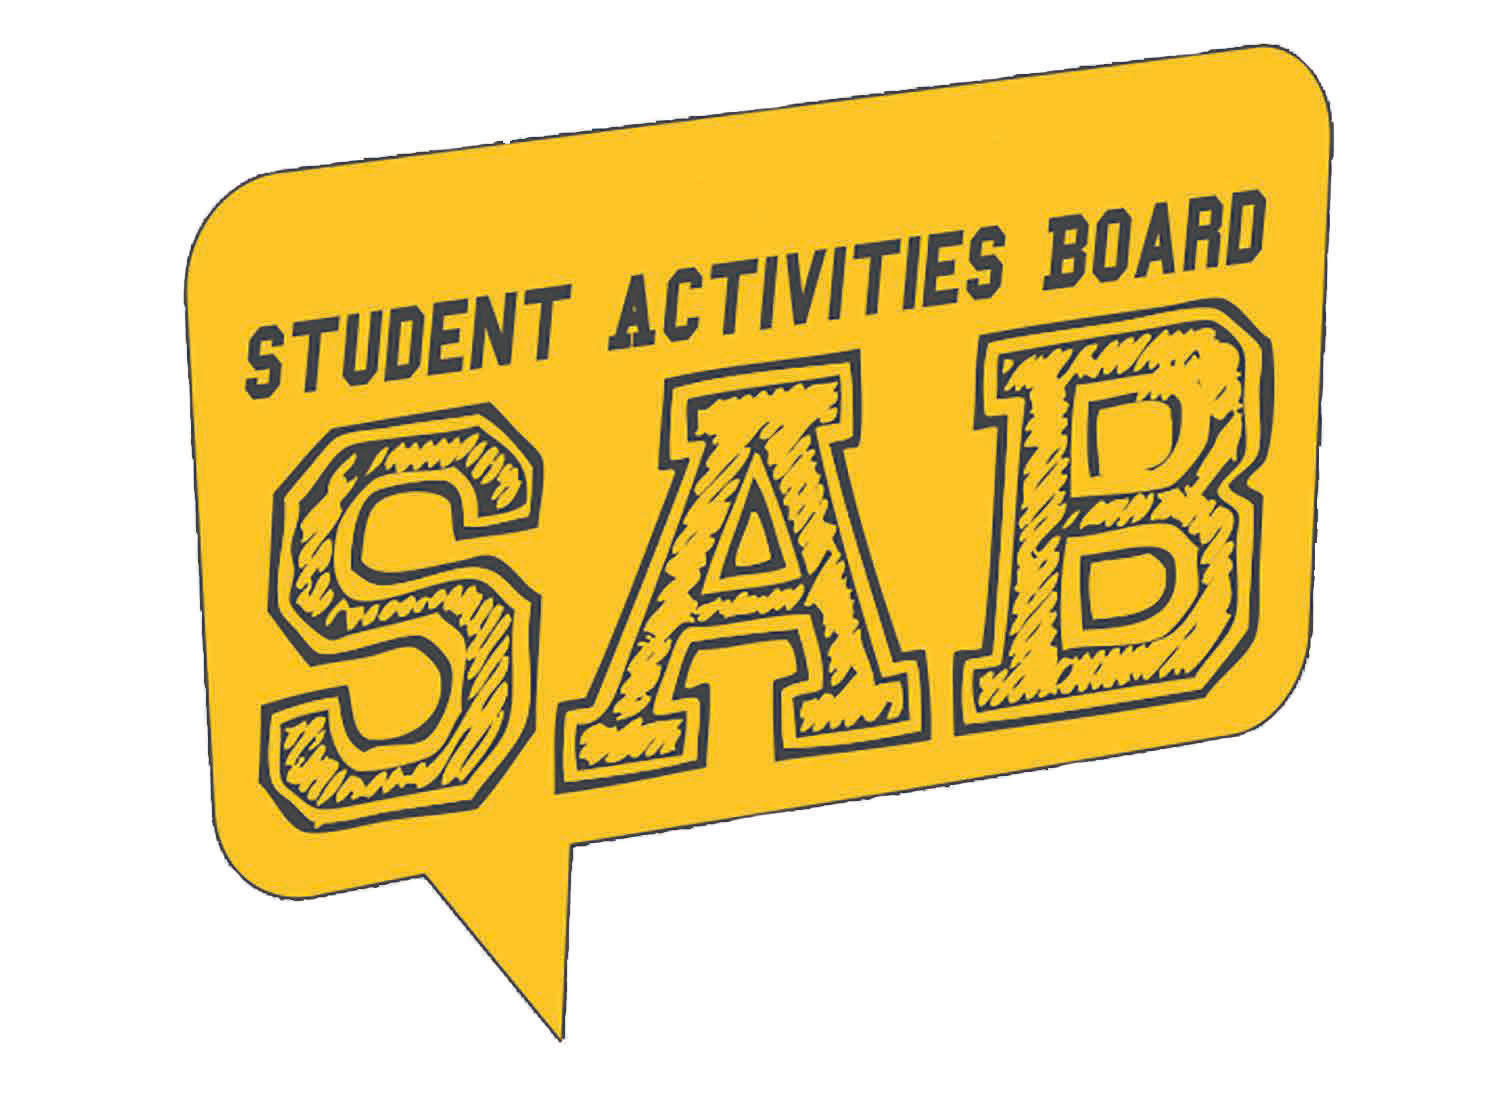 Student Activity Board logo